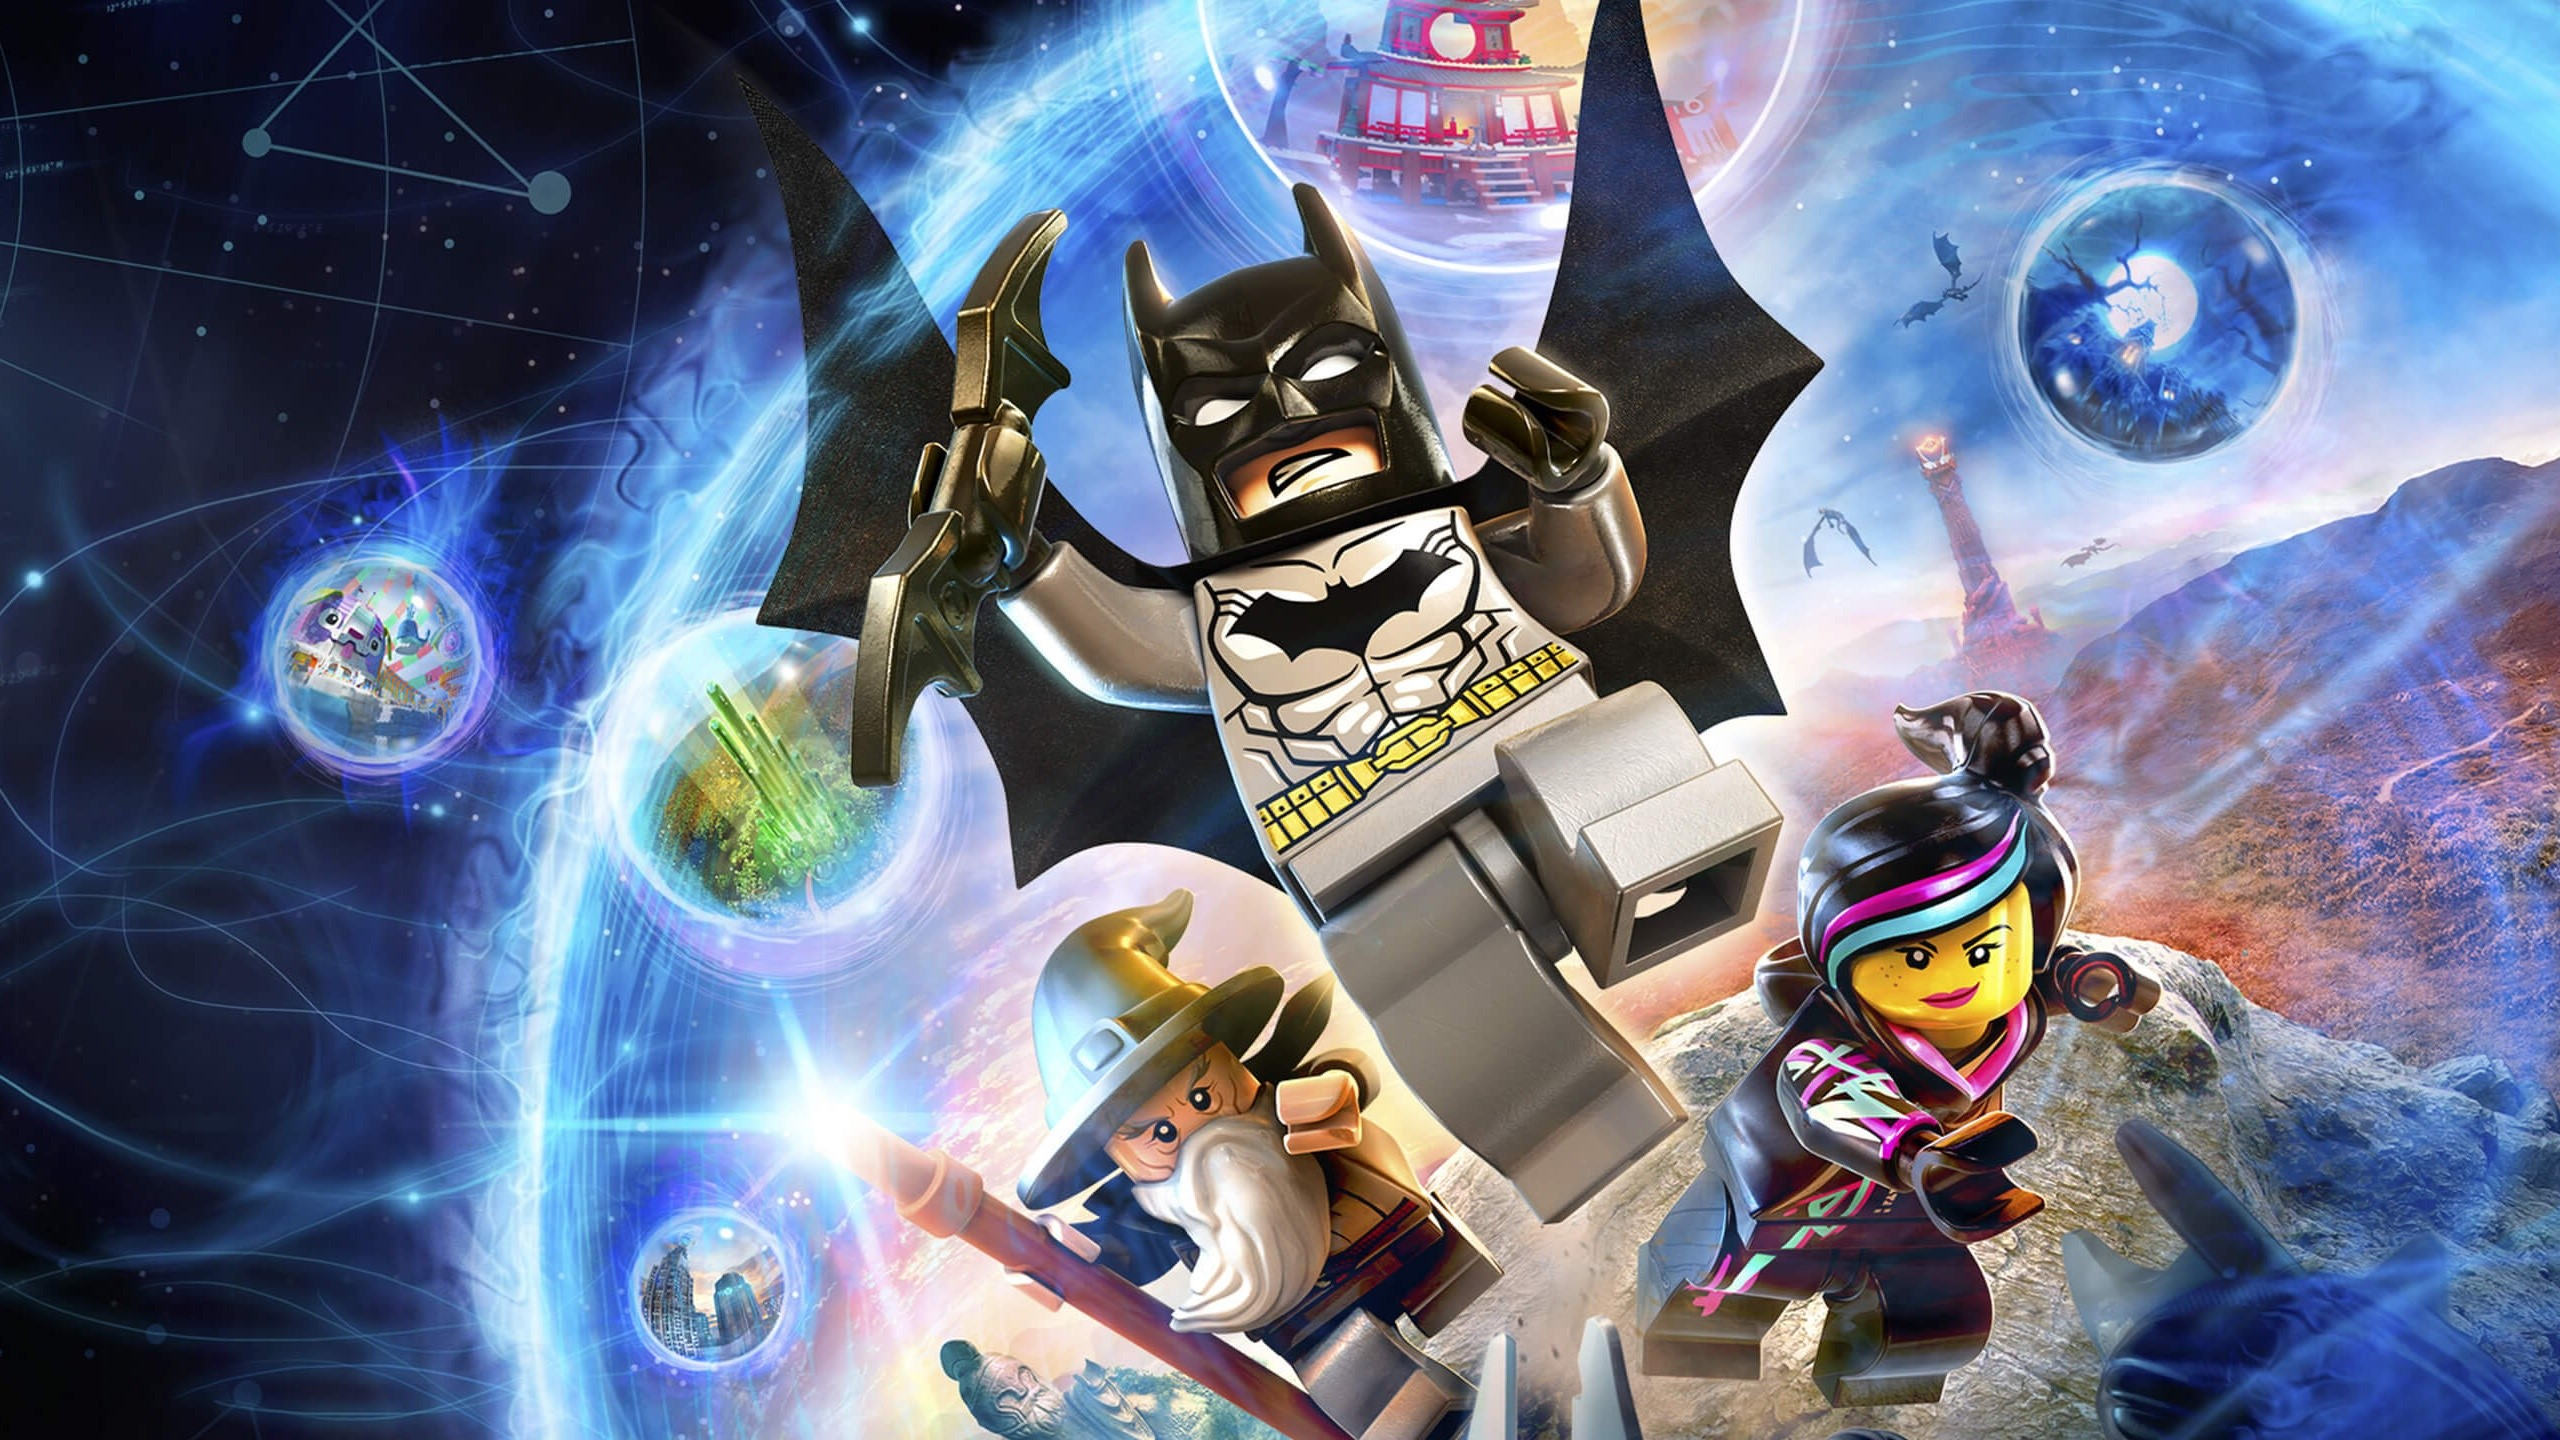 Wallpaper Game Lego Dimensions